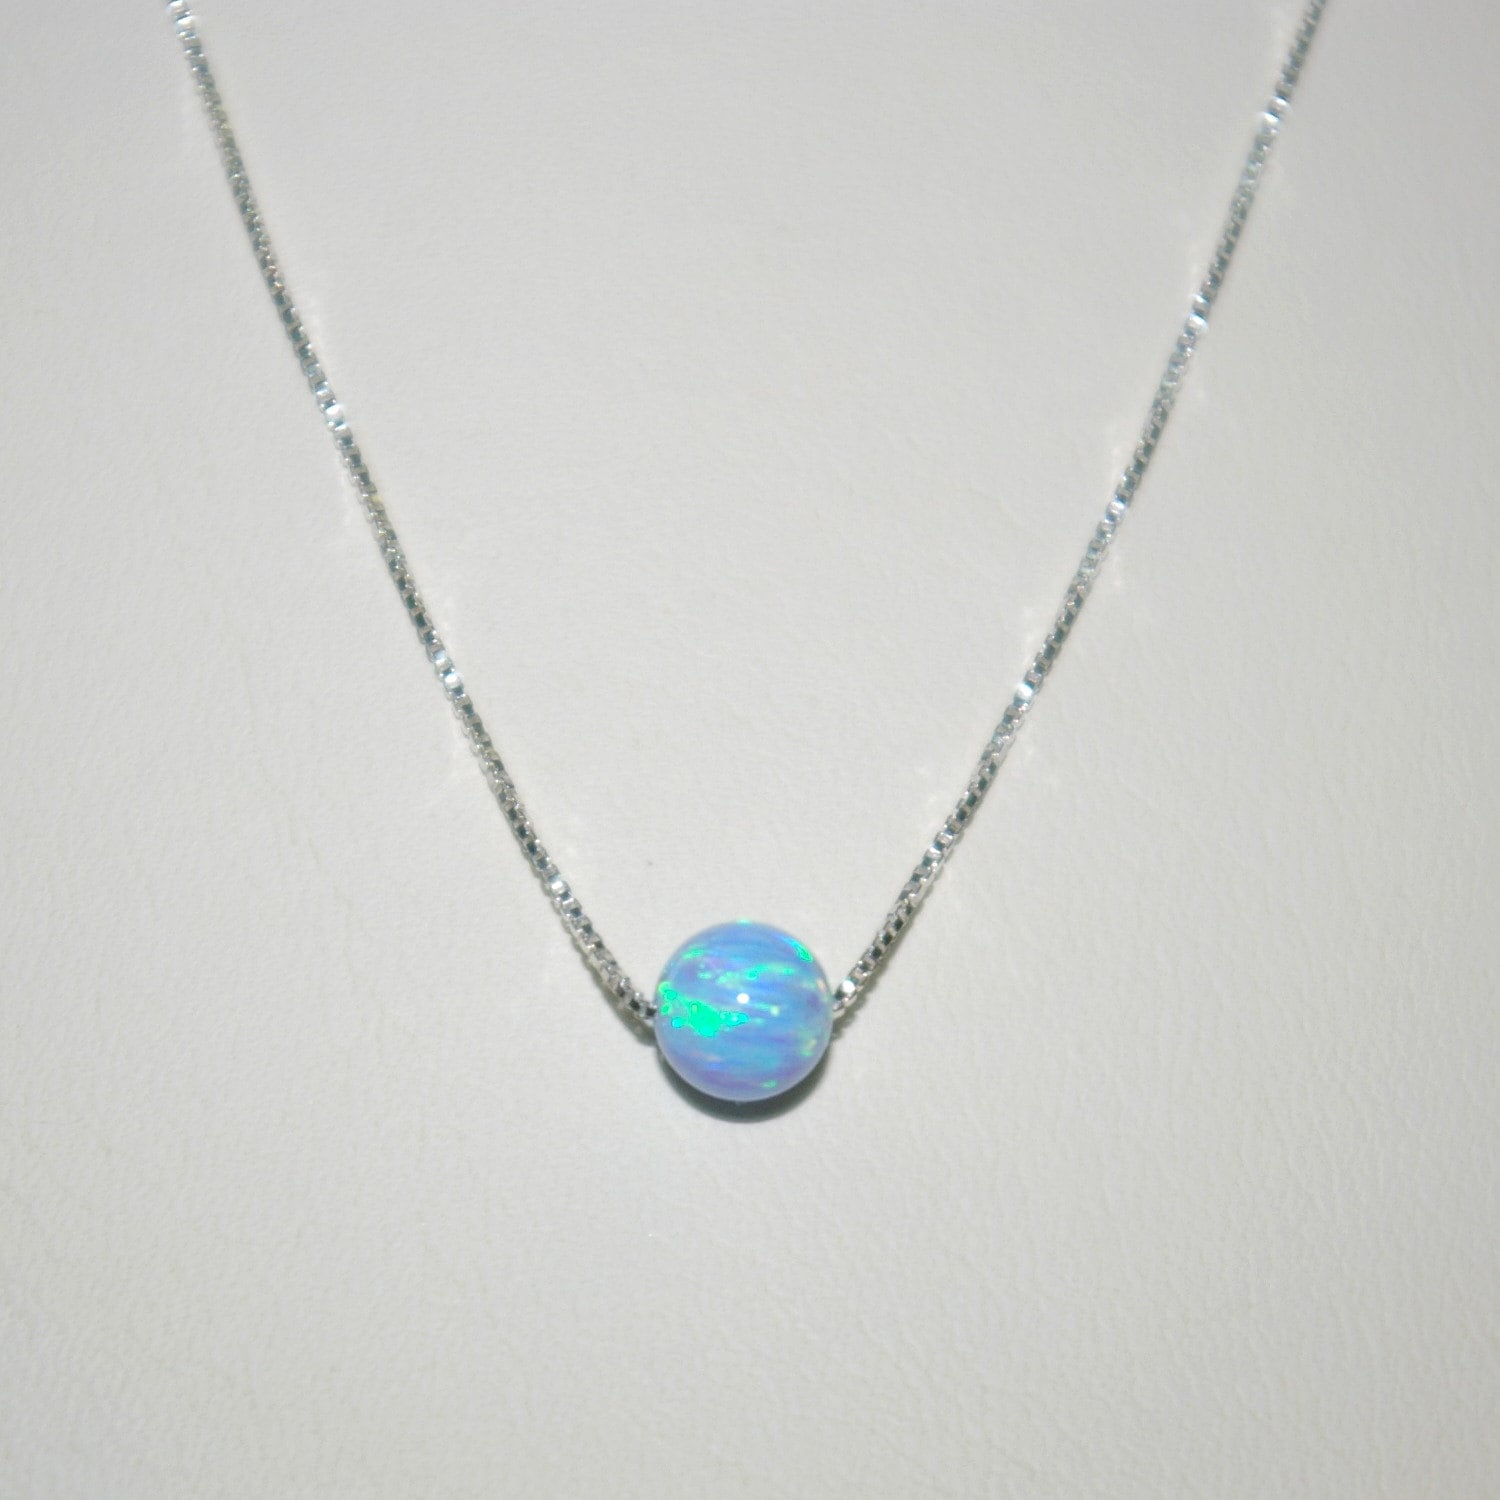 pendant solitaire b az jewelry silver opal sterling jf bling set bezel necklace blue round bzl